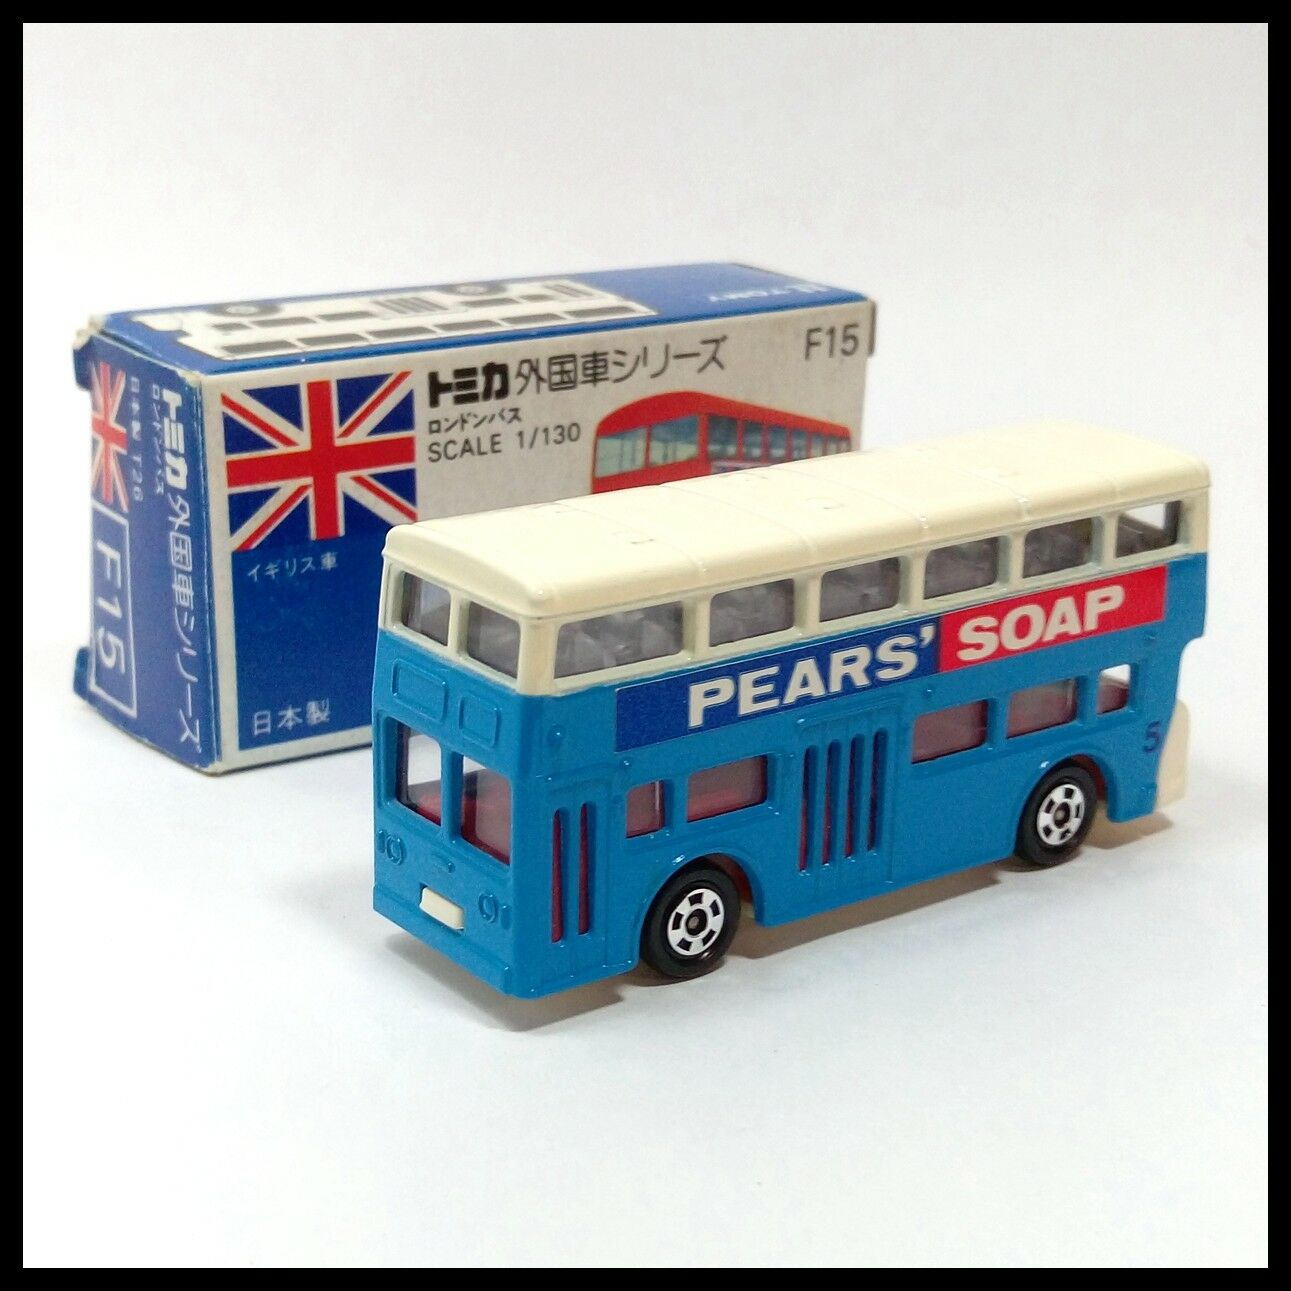 TOMICA F15 T26 LONDON BUS PEARS' SOAP 1 130 MADE IN JAPAN TOMY NEW DIECAST CAR